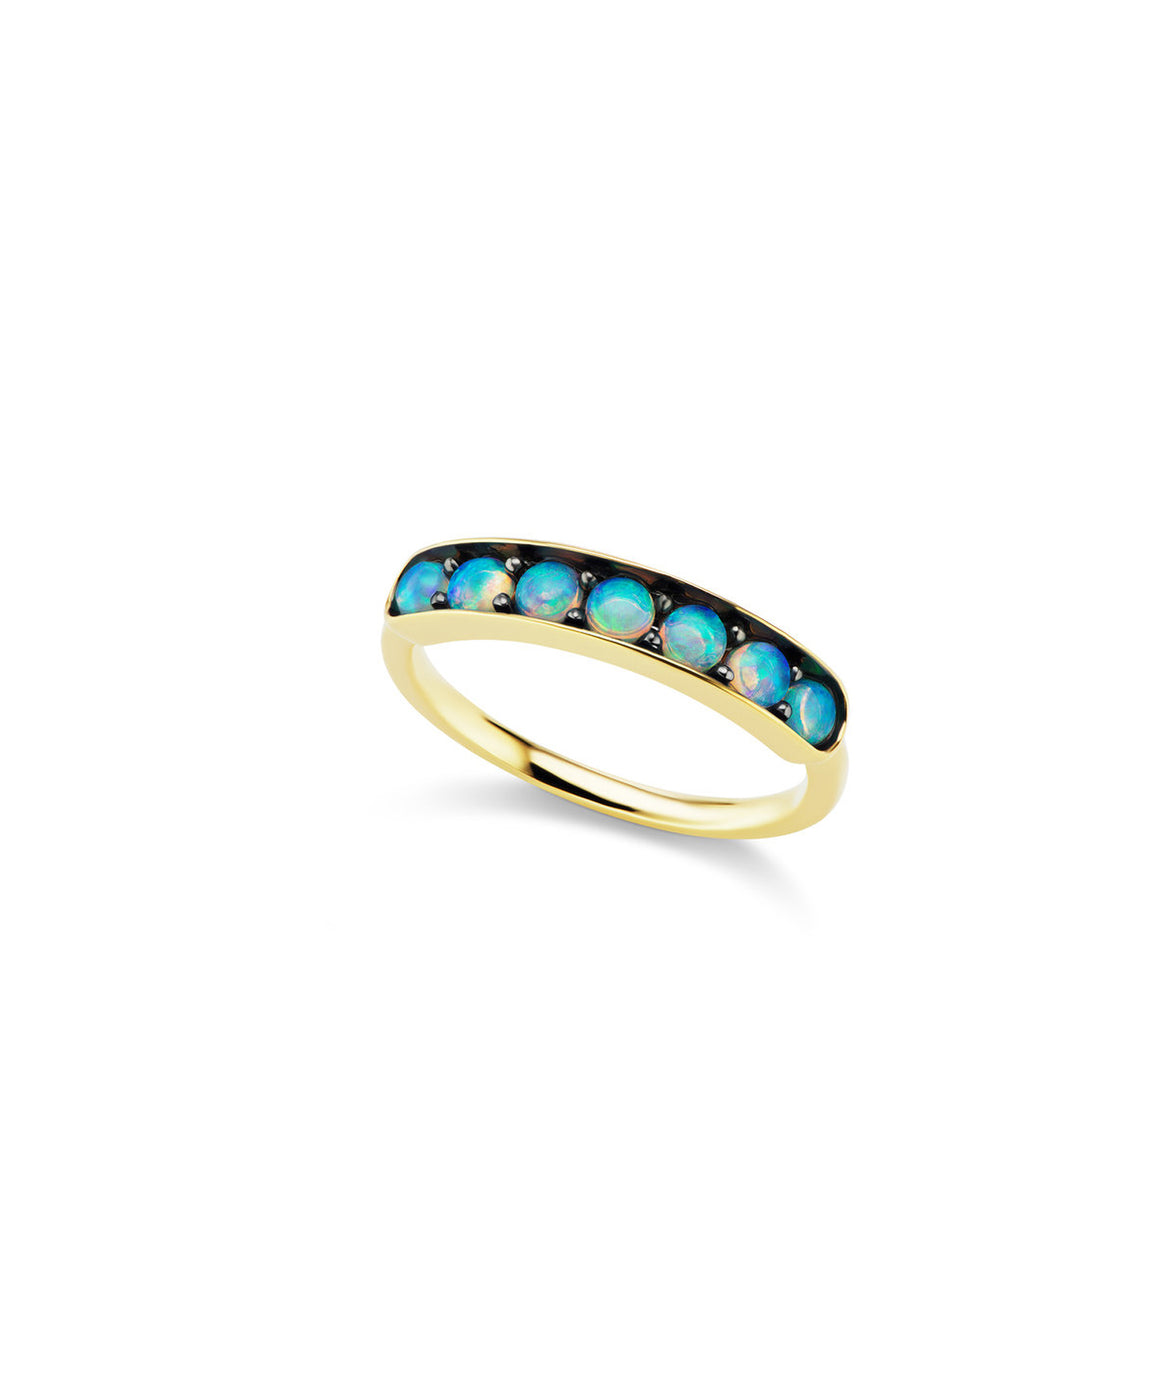 Large half eternity band with opals